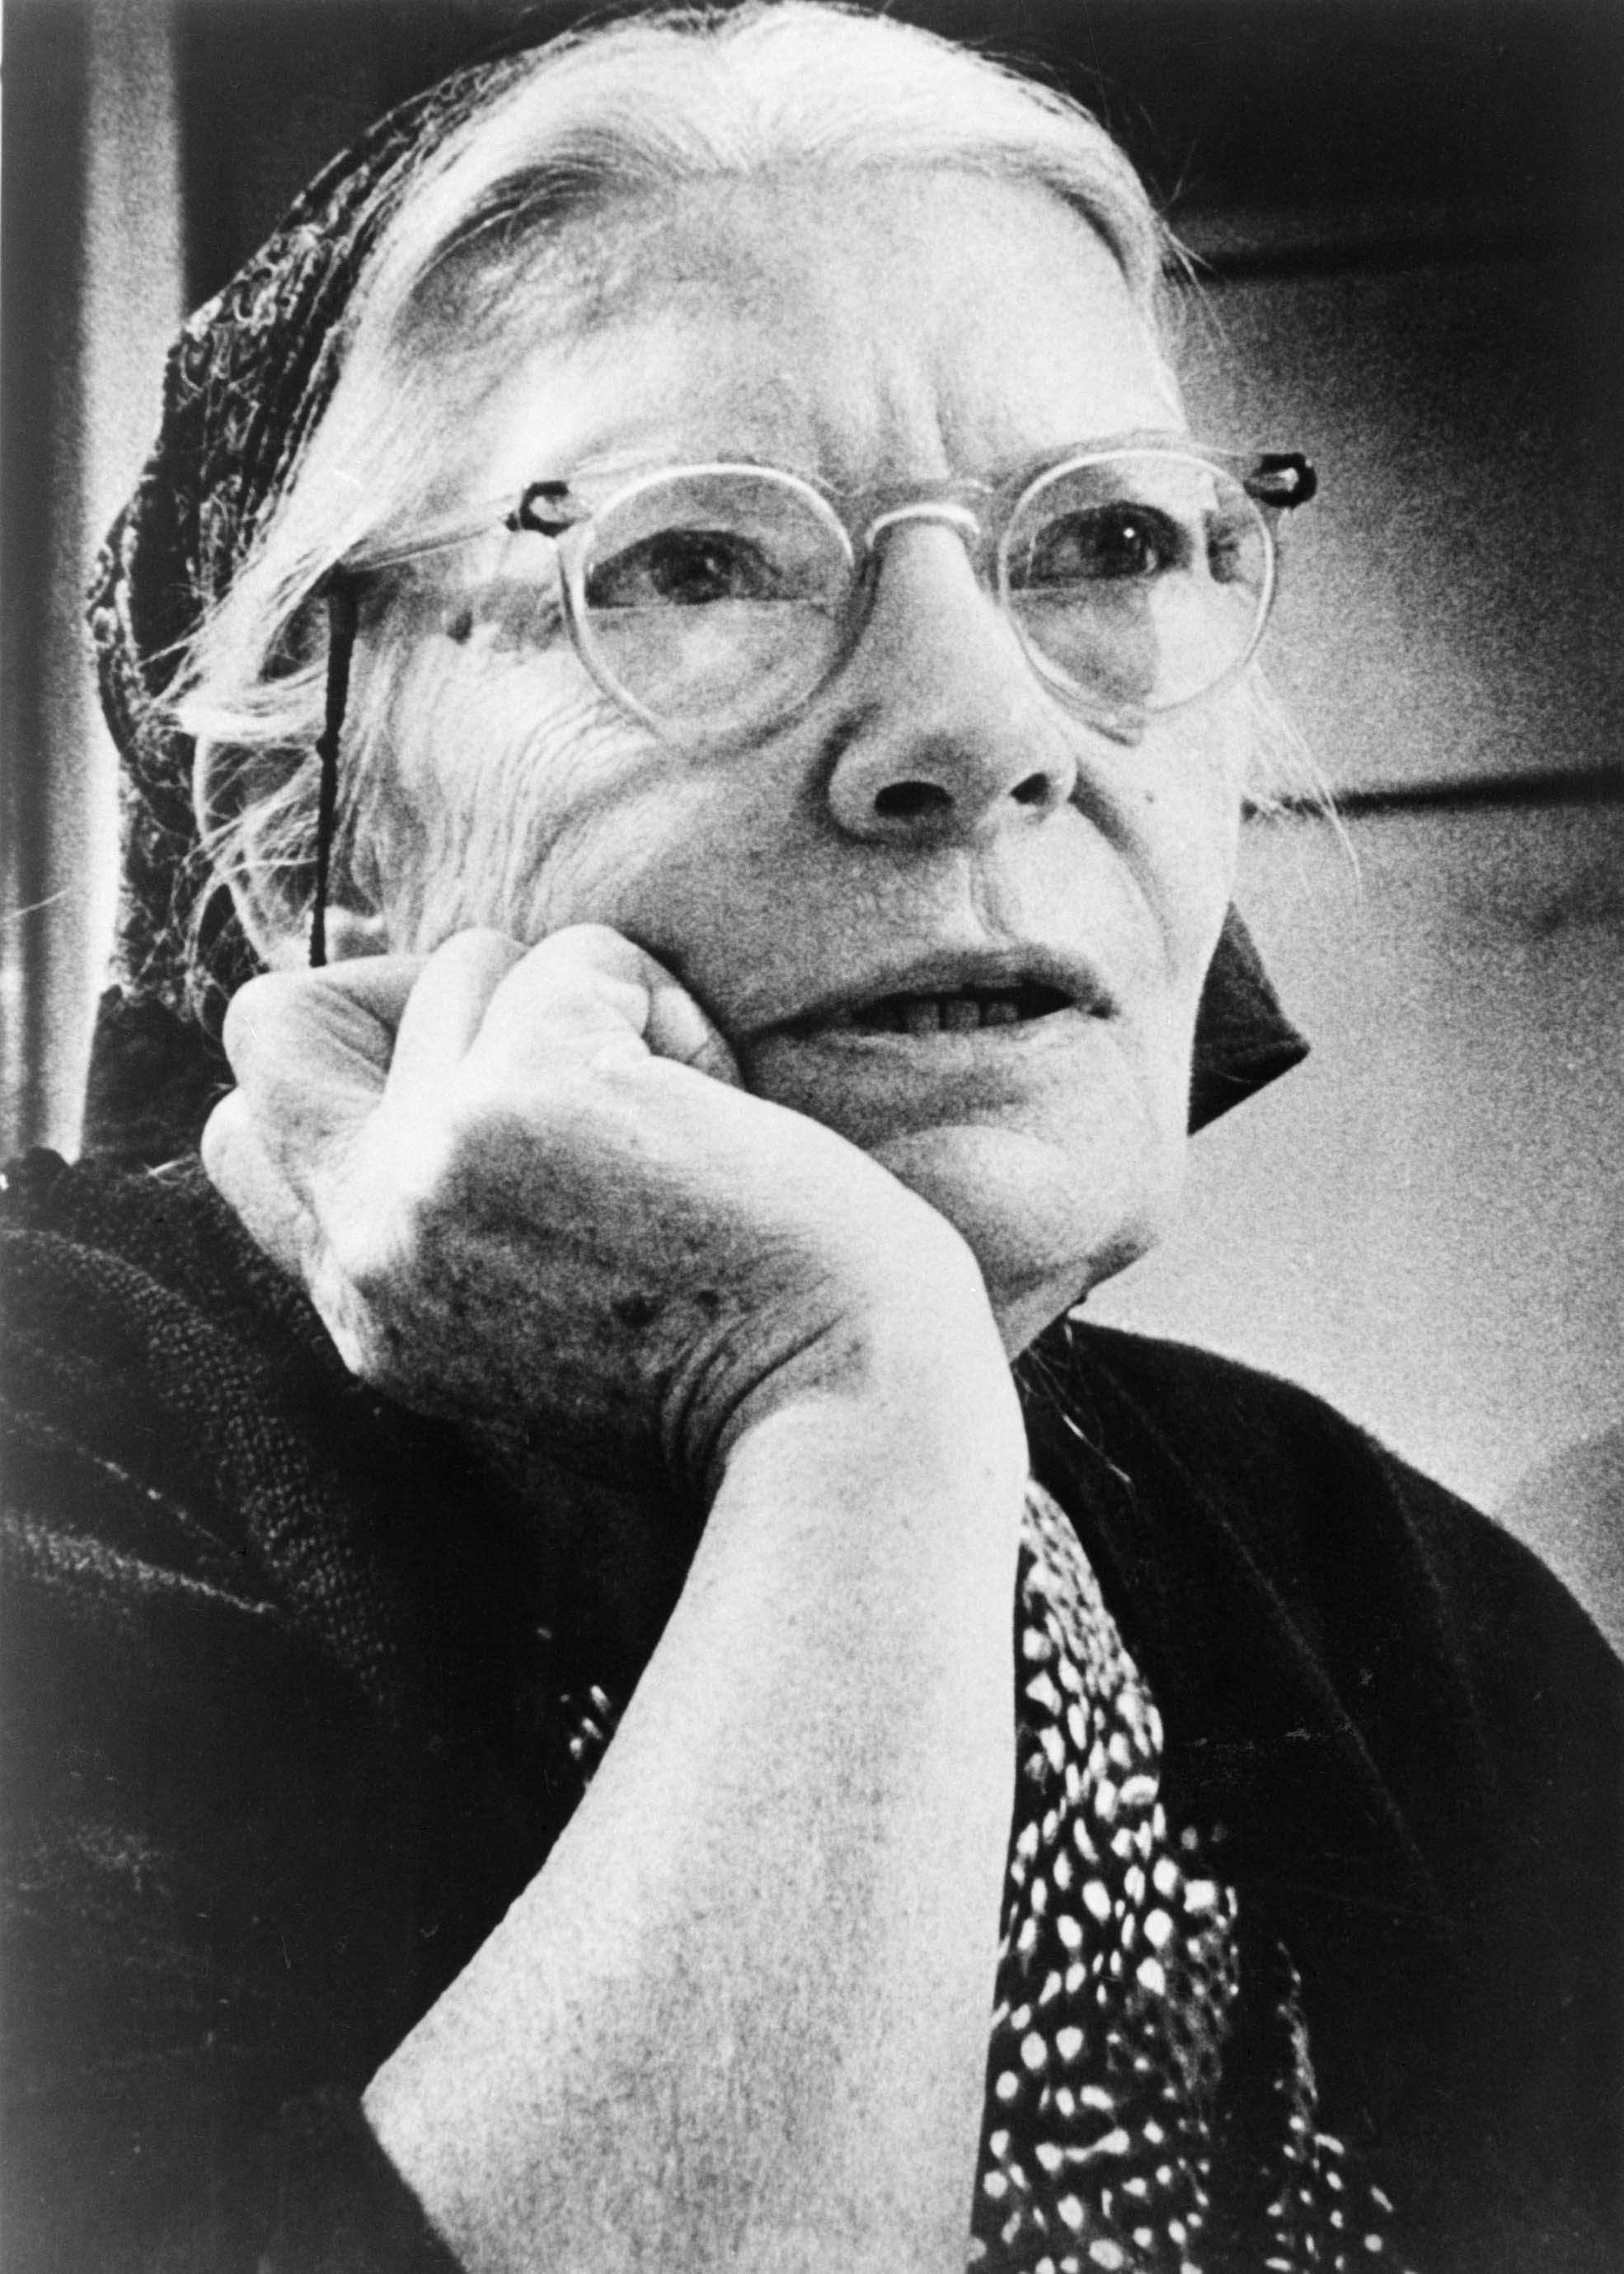 dorothy day essay Today, tomorrow, next year and throughout this new century dorothy day provokes us, pricks our consciences, upsets the comfort of middle class christianity, and challenges our assimilation in contemporary american life by bearing witness to the possibility of living a life guided solely by the.